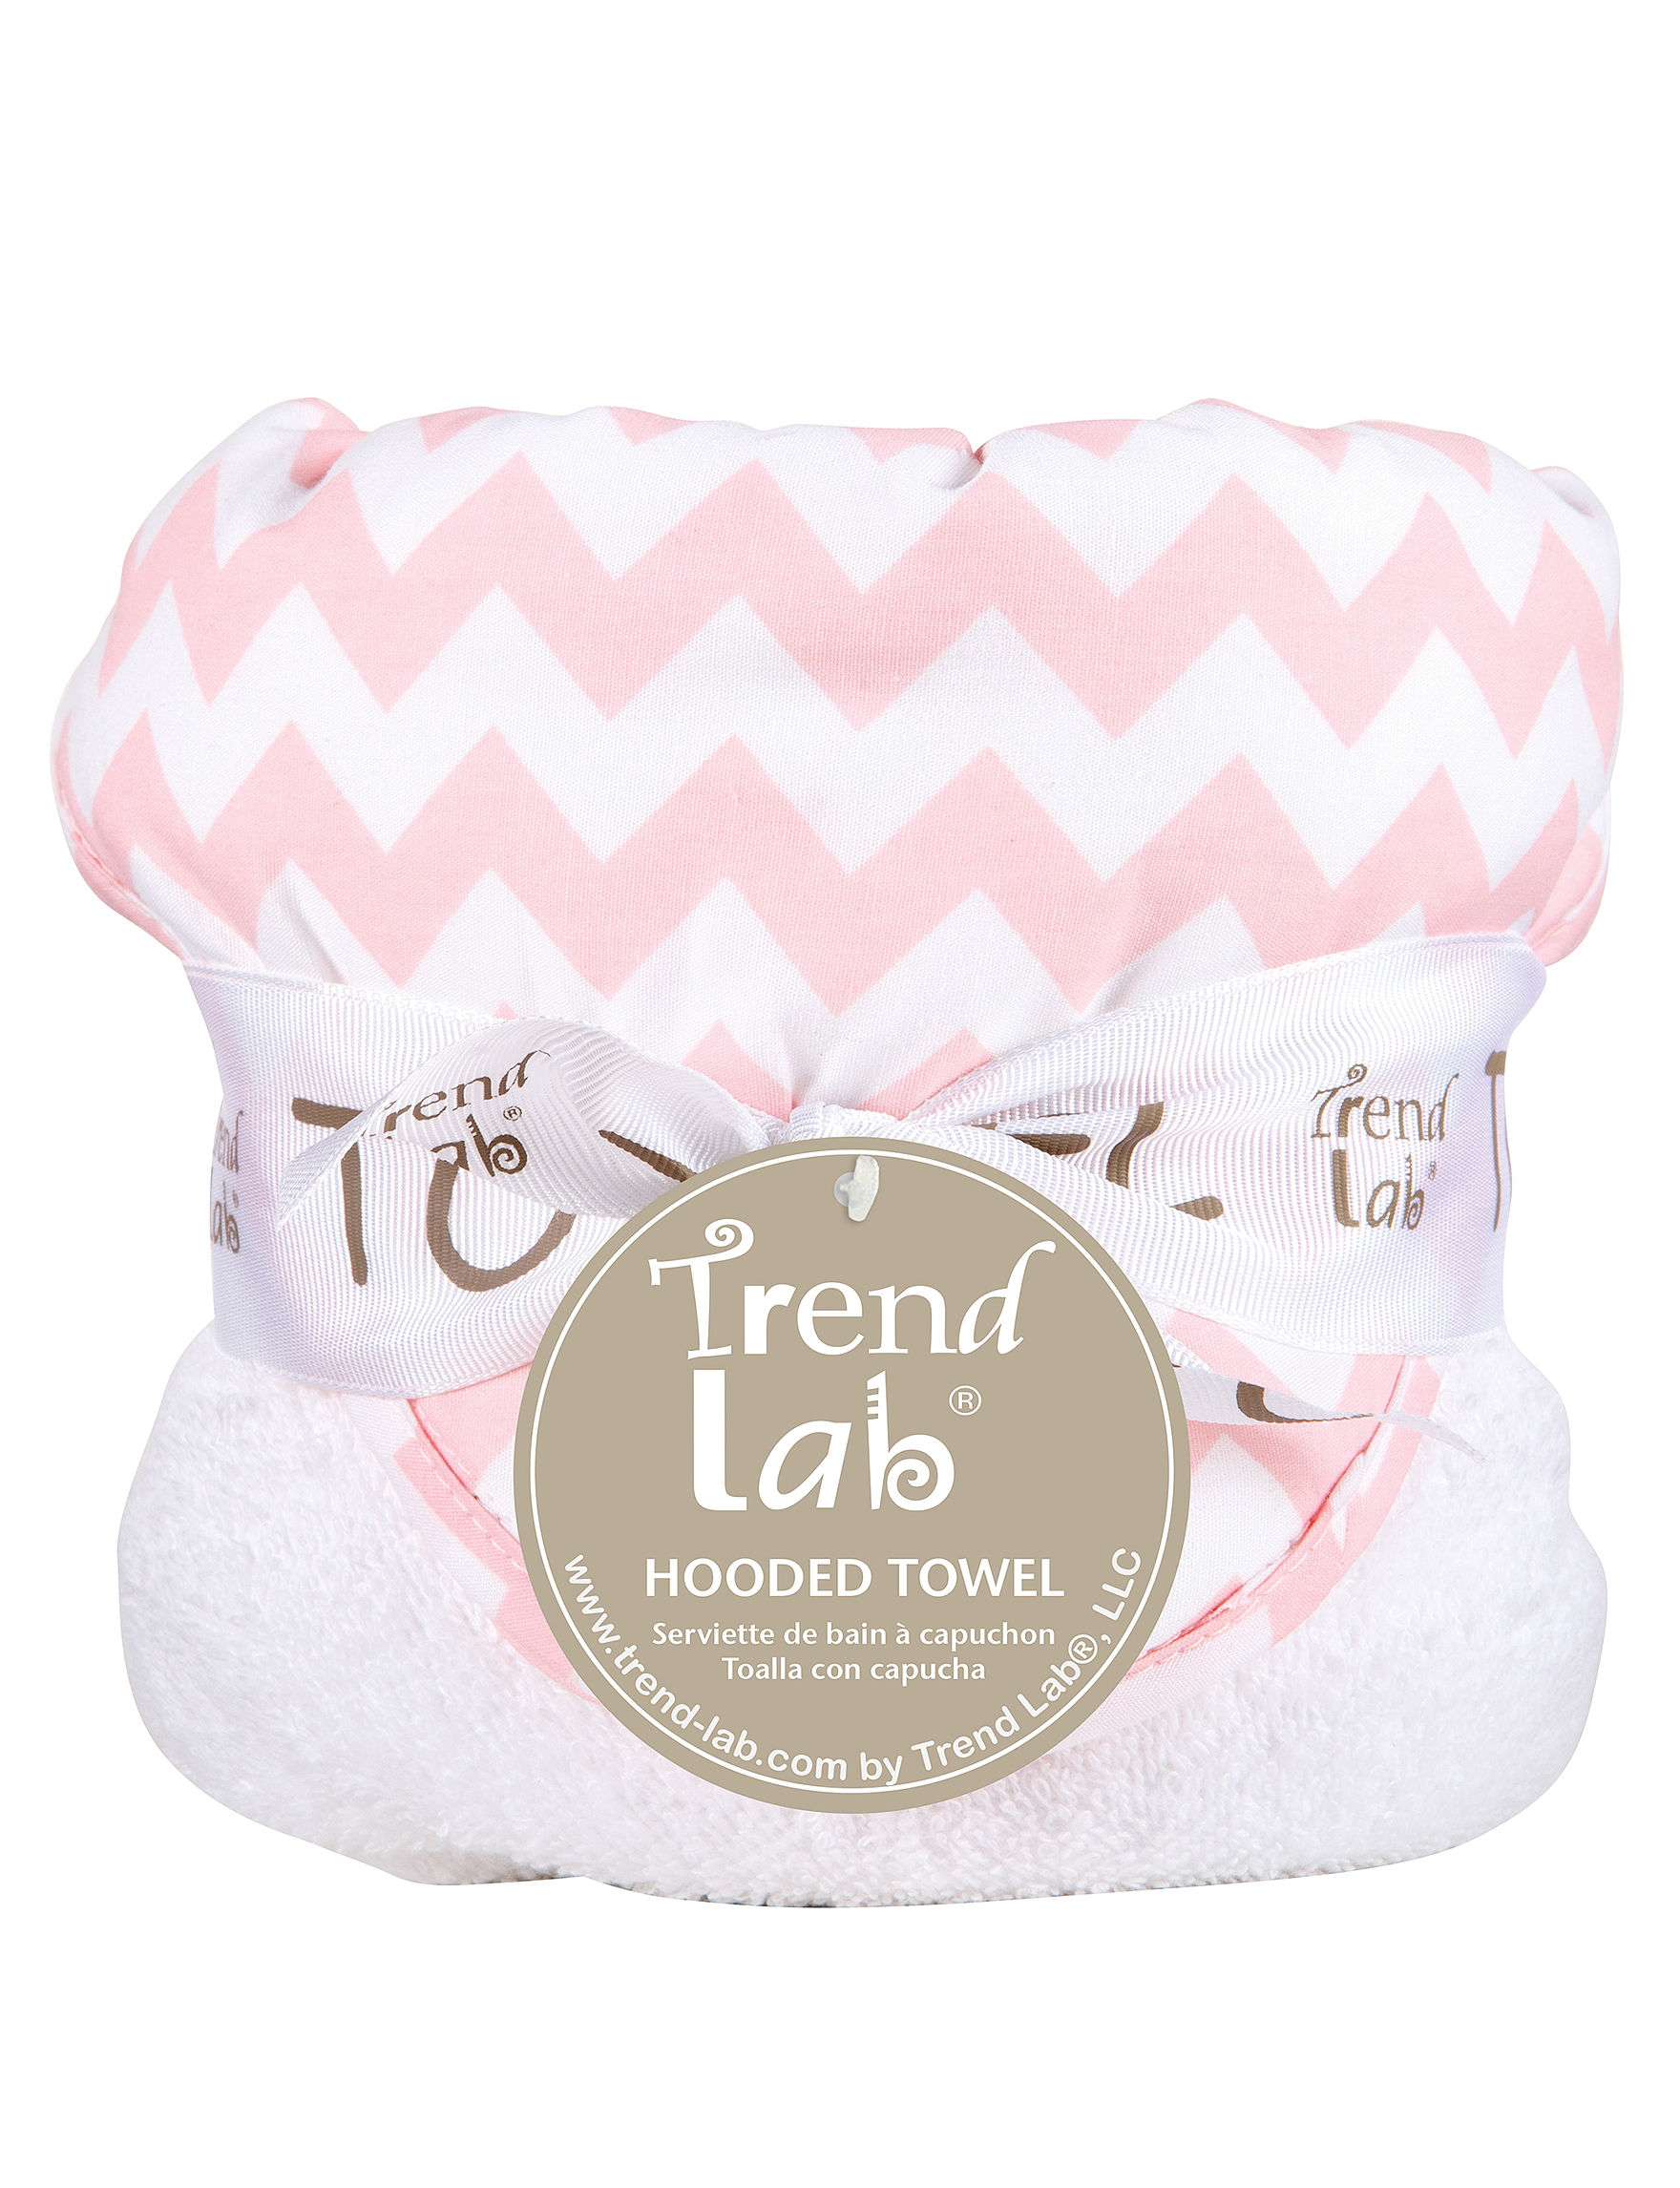 Trend Lab Pink / White Hooded Towels